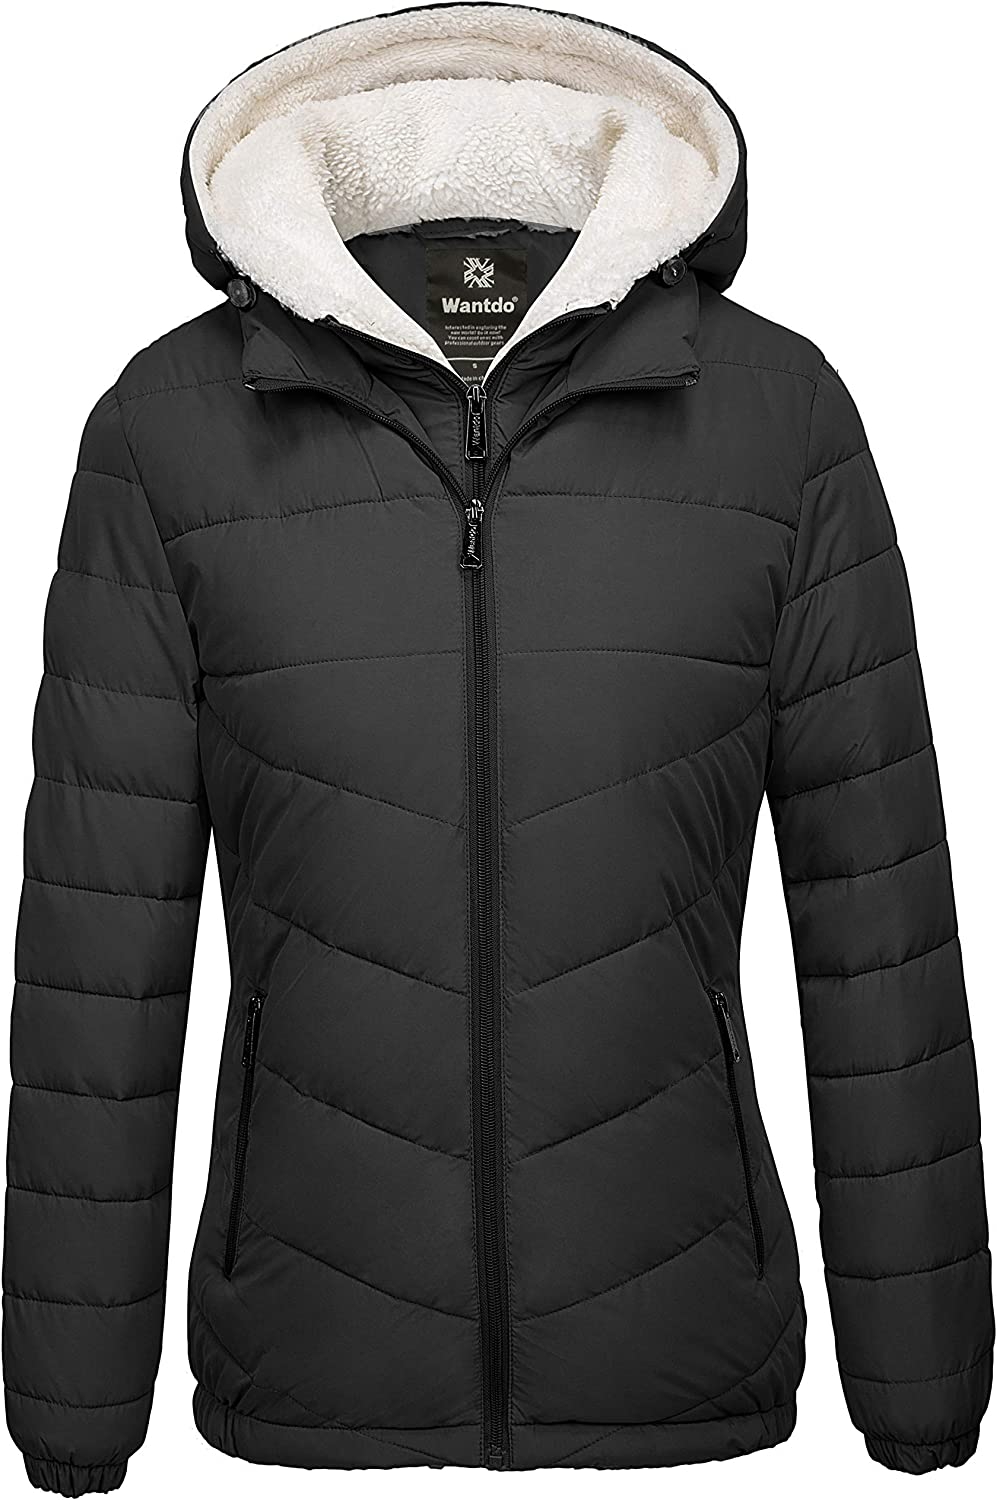 Wantdo Women's Quilted Winter Coats Hooded Warm Puffer Jacket with Fleece Hood: Clothing